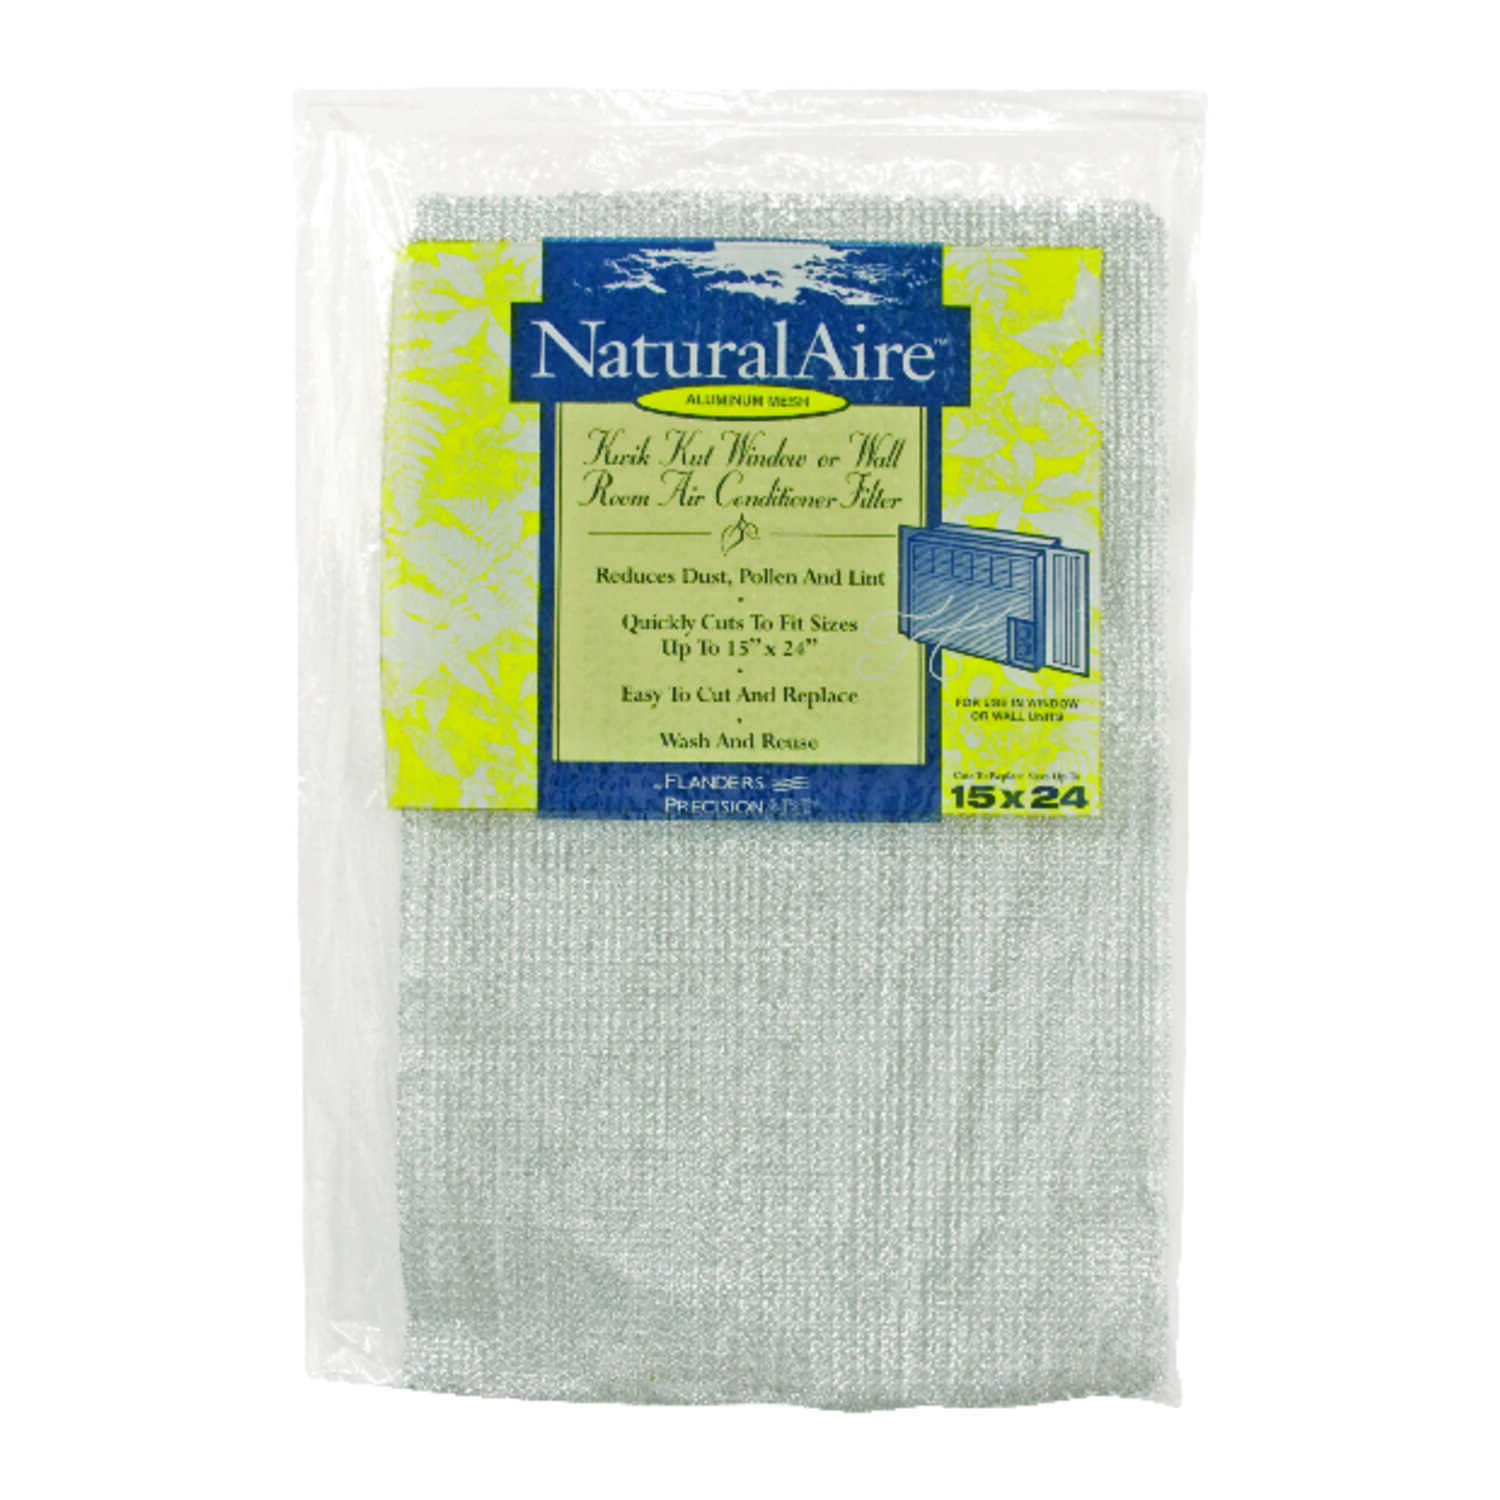 AAF Flanders  NaturalAire  24 in. H x 15 in. W x 1/4 in. D Aluminium  Air Conditioner Filter